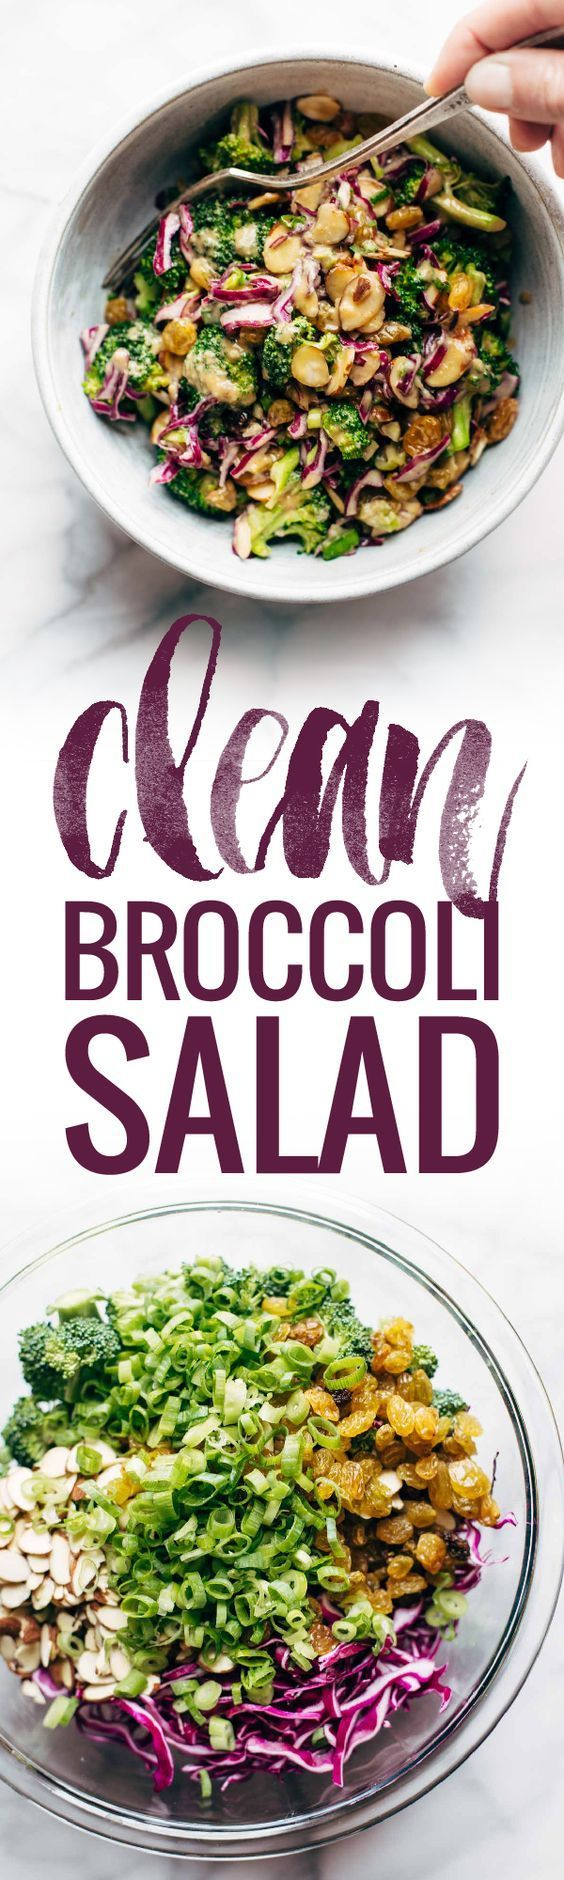 CLEAN Broccoli Salad - non-mayo-based vegan goodness! with purple cabbage, raisins, almonds, green onions, and a creamy almond butter dressing. seriously yummy!